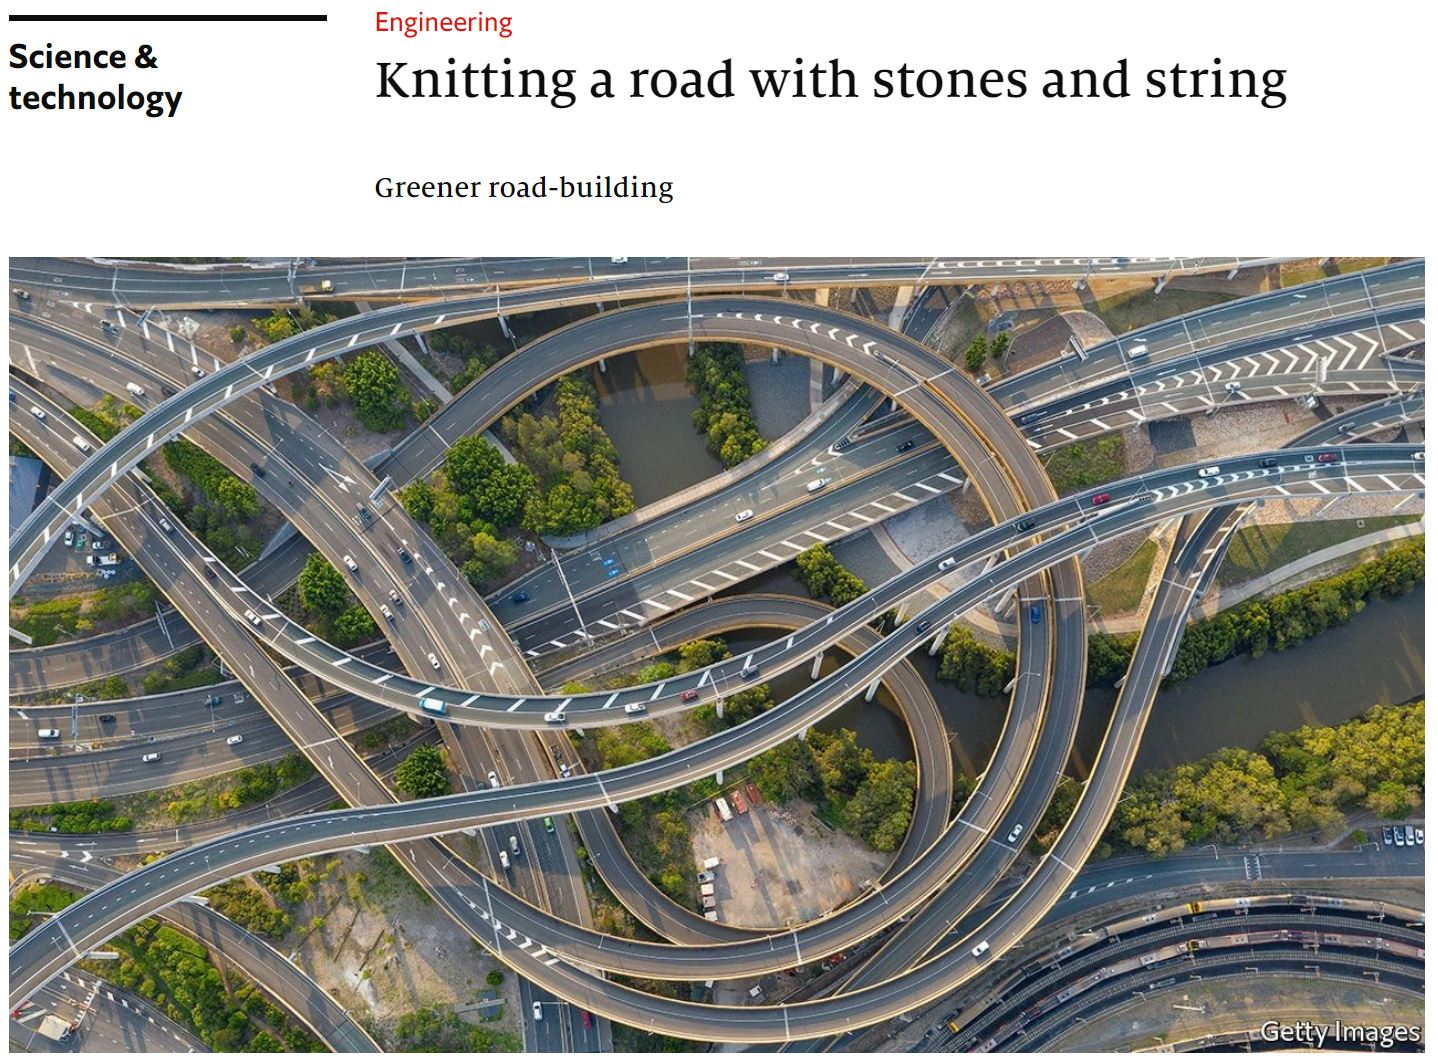 econ_2021-04-25_Knitting a road with stones and string